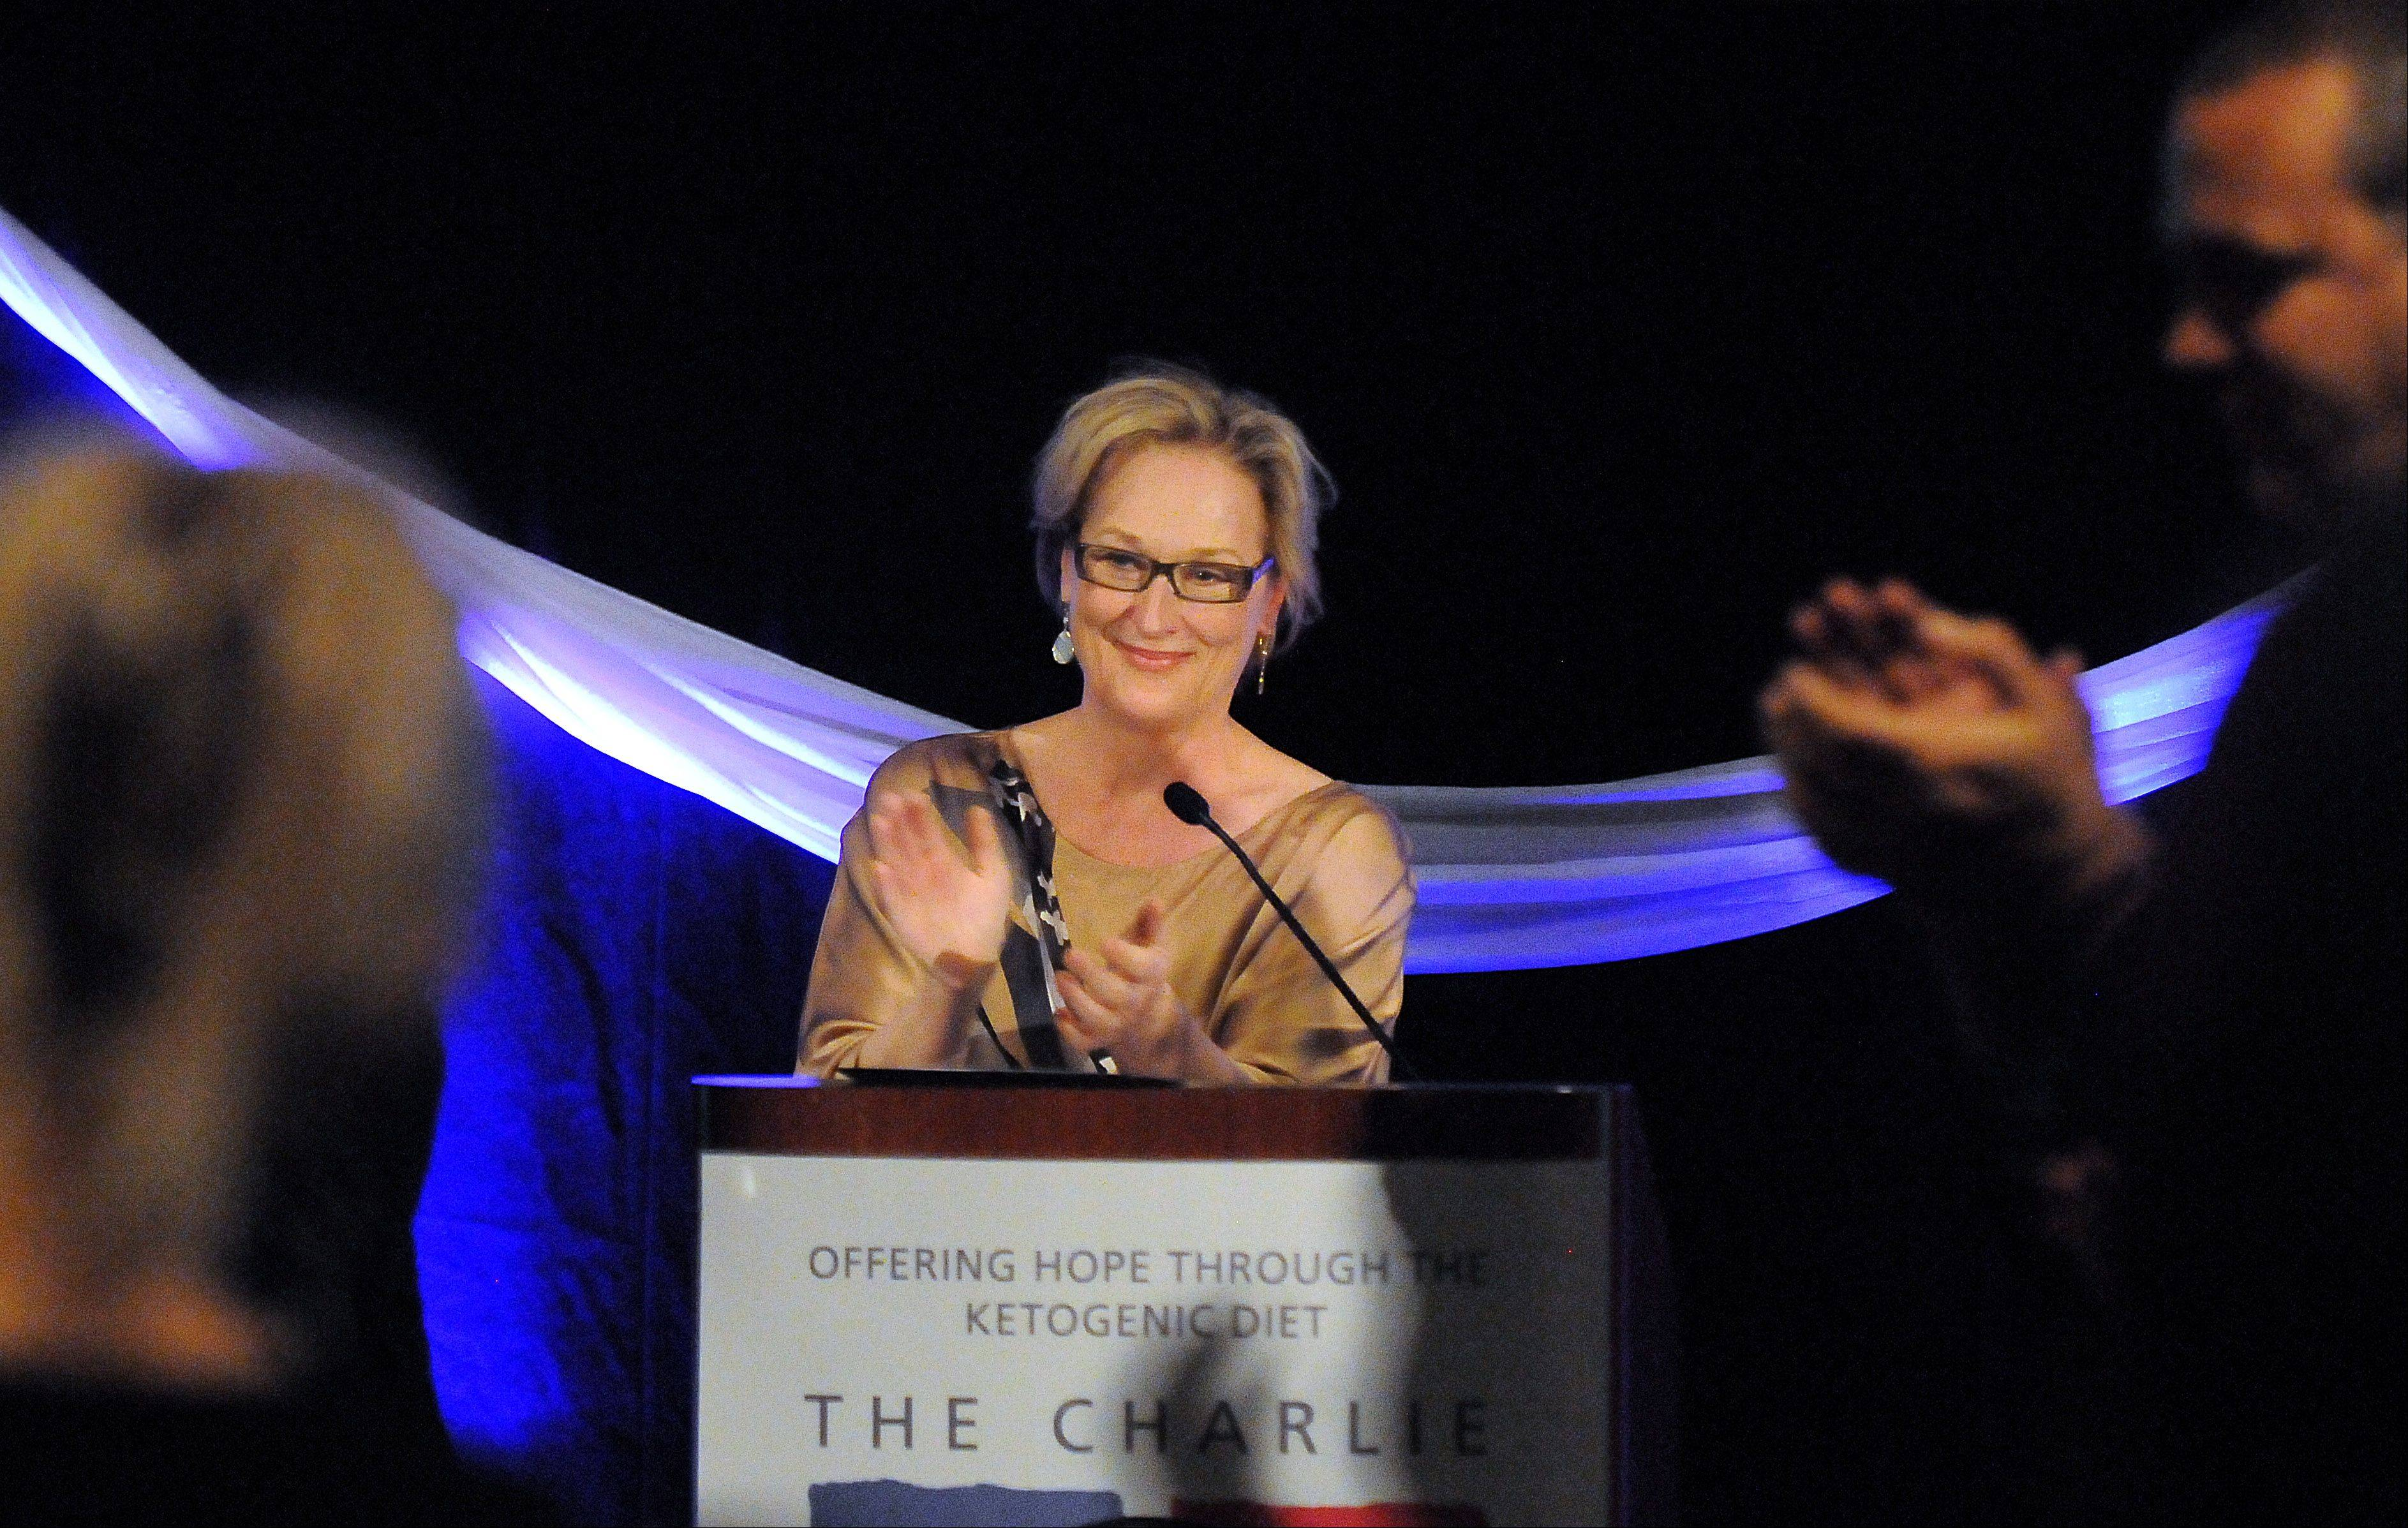 Meryl Streep takes the podium for a speech and applauds the parents of epileptic children and all those involved in helping them on Friday at a fundraiser for The Charlie Foundation to Help Cure Pediatric Epilepsy, held at Hilton Chicago Indian Lakes Resort in Bloomingdale.